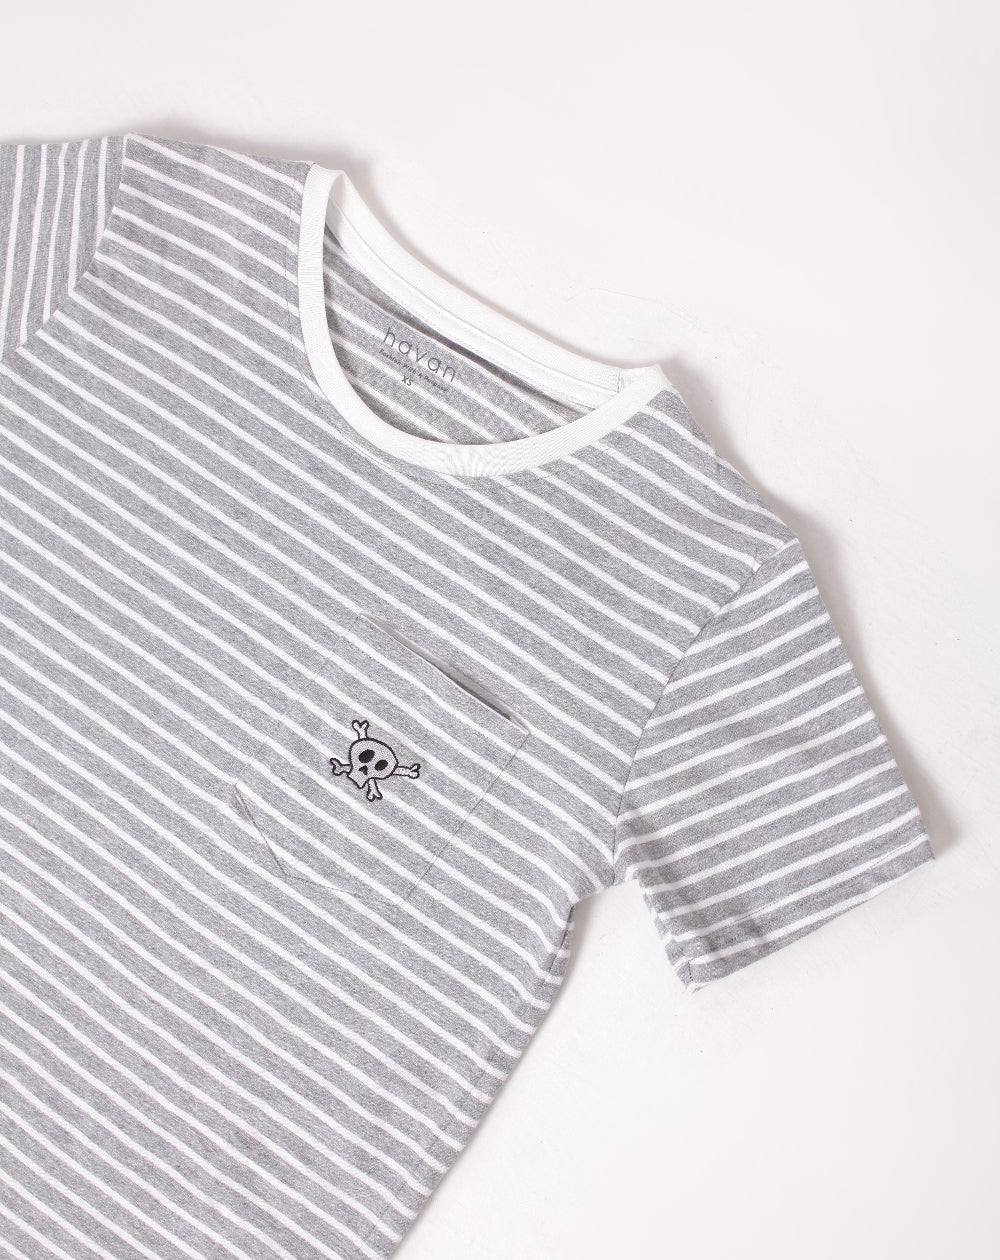 Skeleton | Unisex Adult Grey Stripes